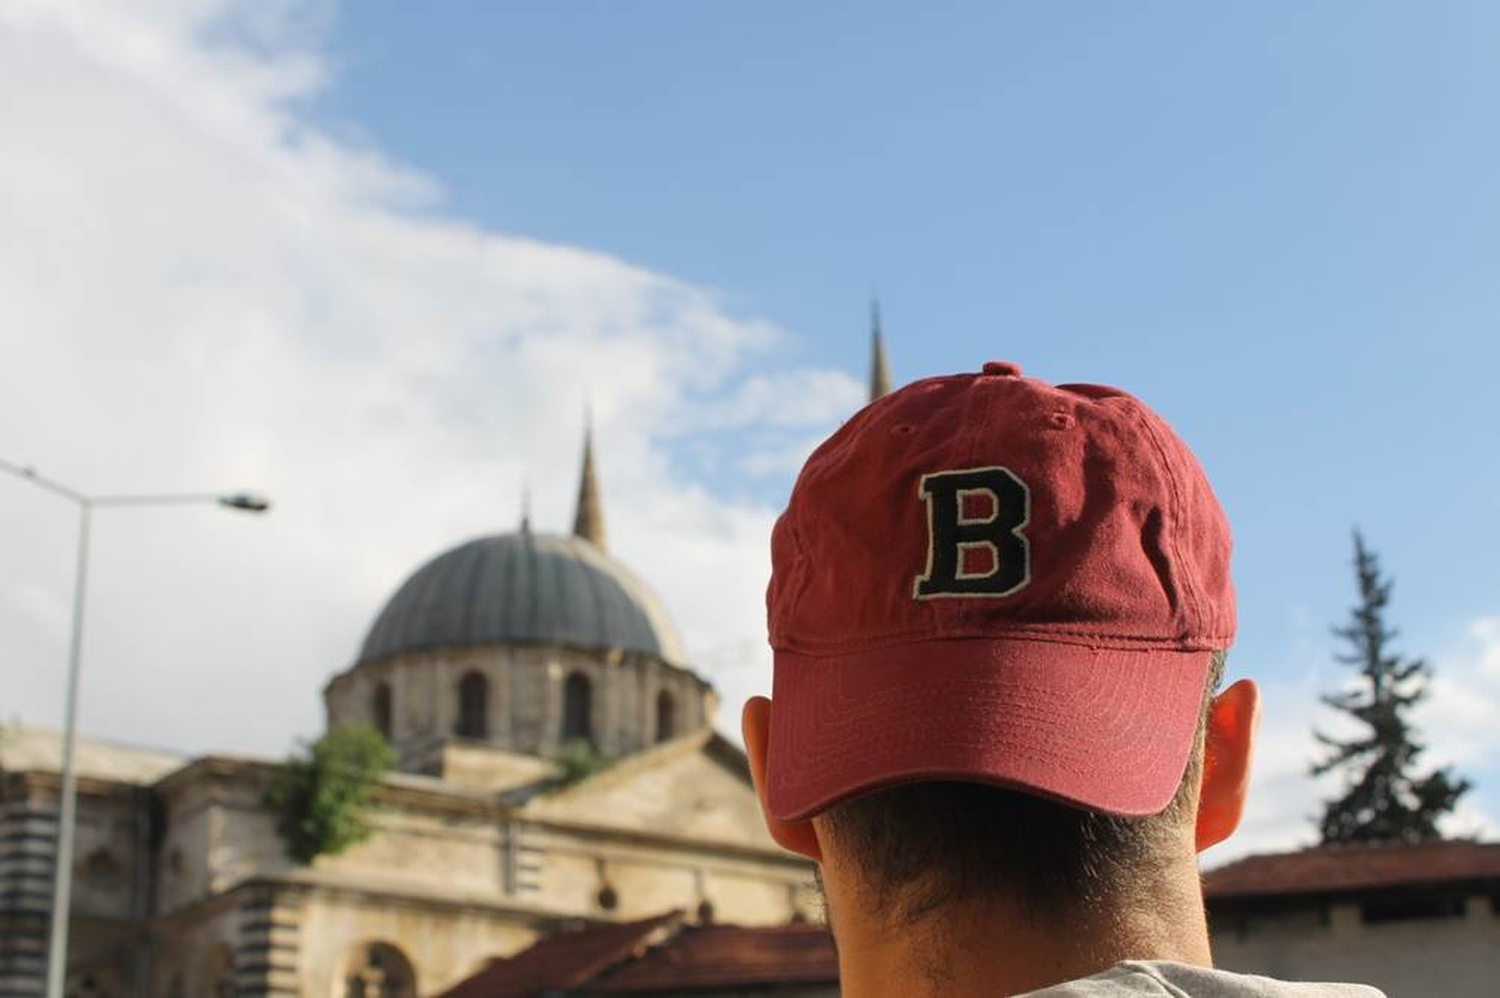 B=Bobcat. Jivko Kozarov '14 looks at a mosque in Gaziantep in southeast Turkey. Mosques appear in many urban settings, and in some parts of Turkey they stand out in the skyline. Phillip Dube '16/Bates College.